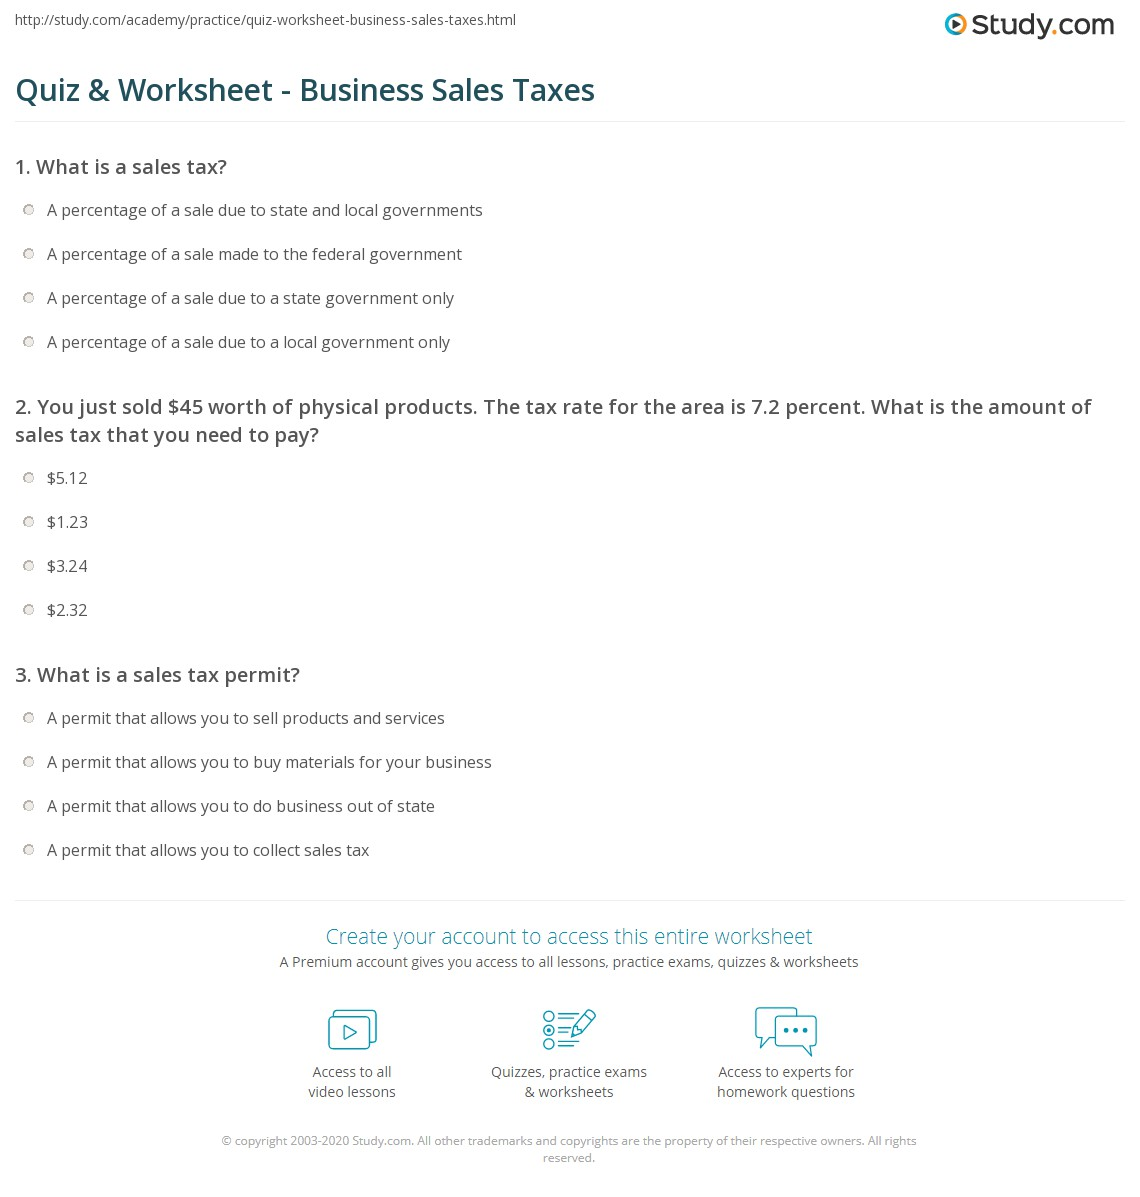 quiz worksheet business sales taxes. Black Bedroom Furniture Sets. Home Design Ideas